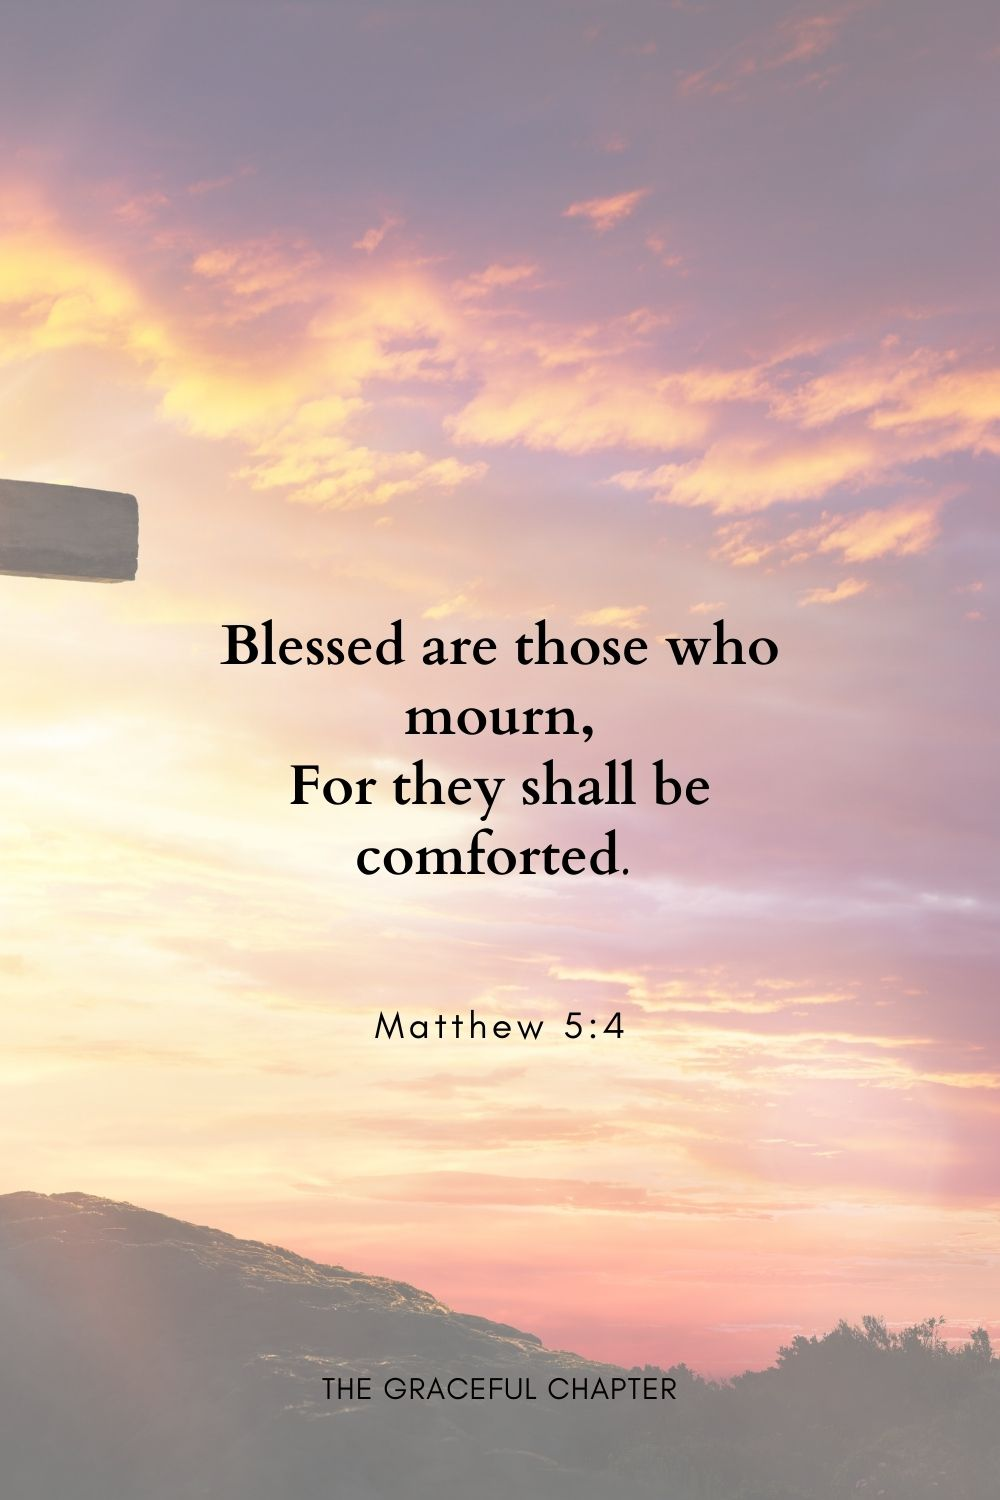 Blessed are those who mourn, For they shall be comforted. Matthew 5:4